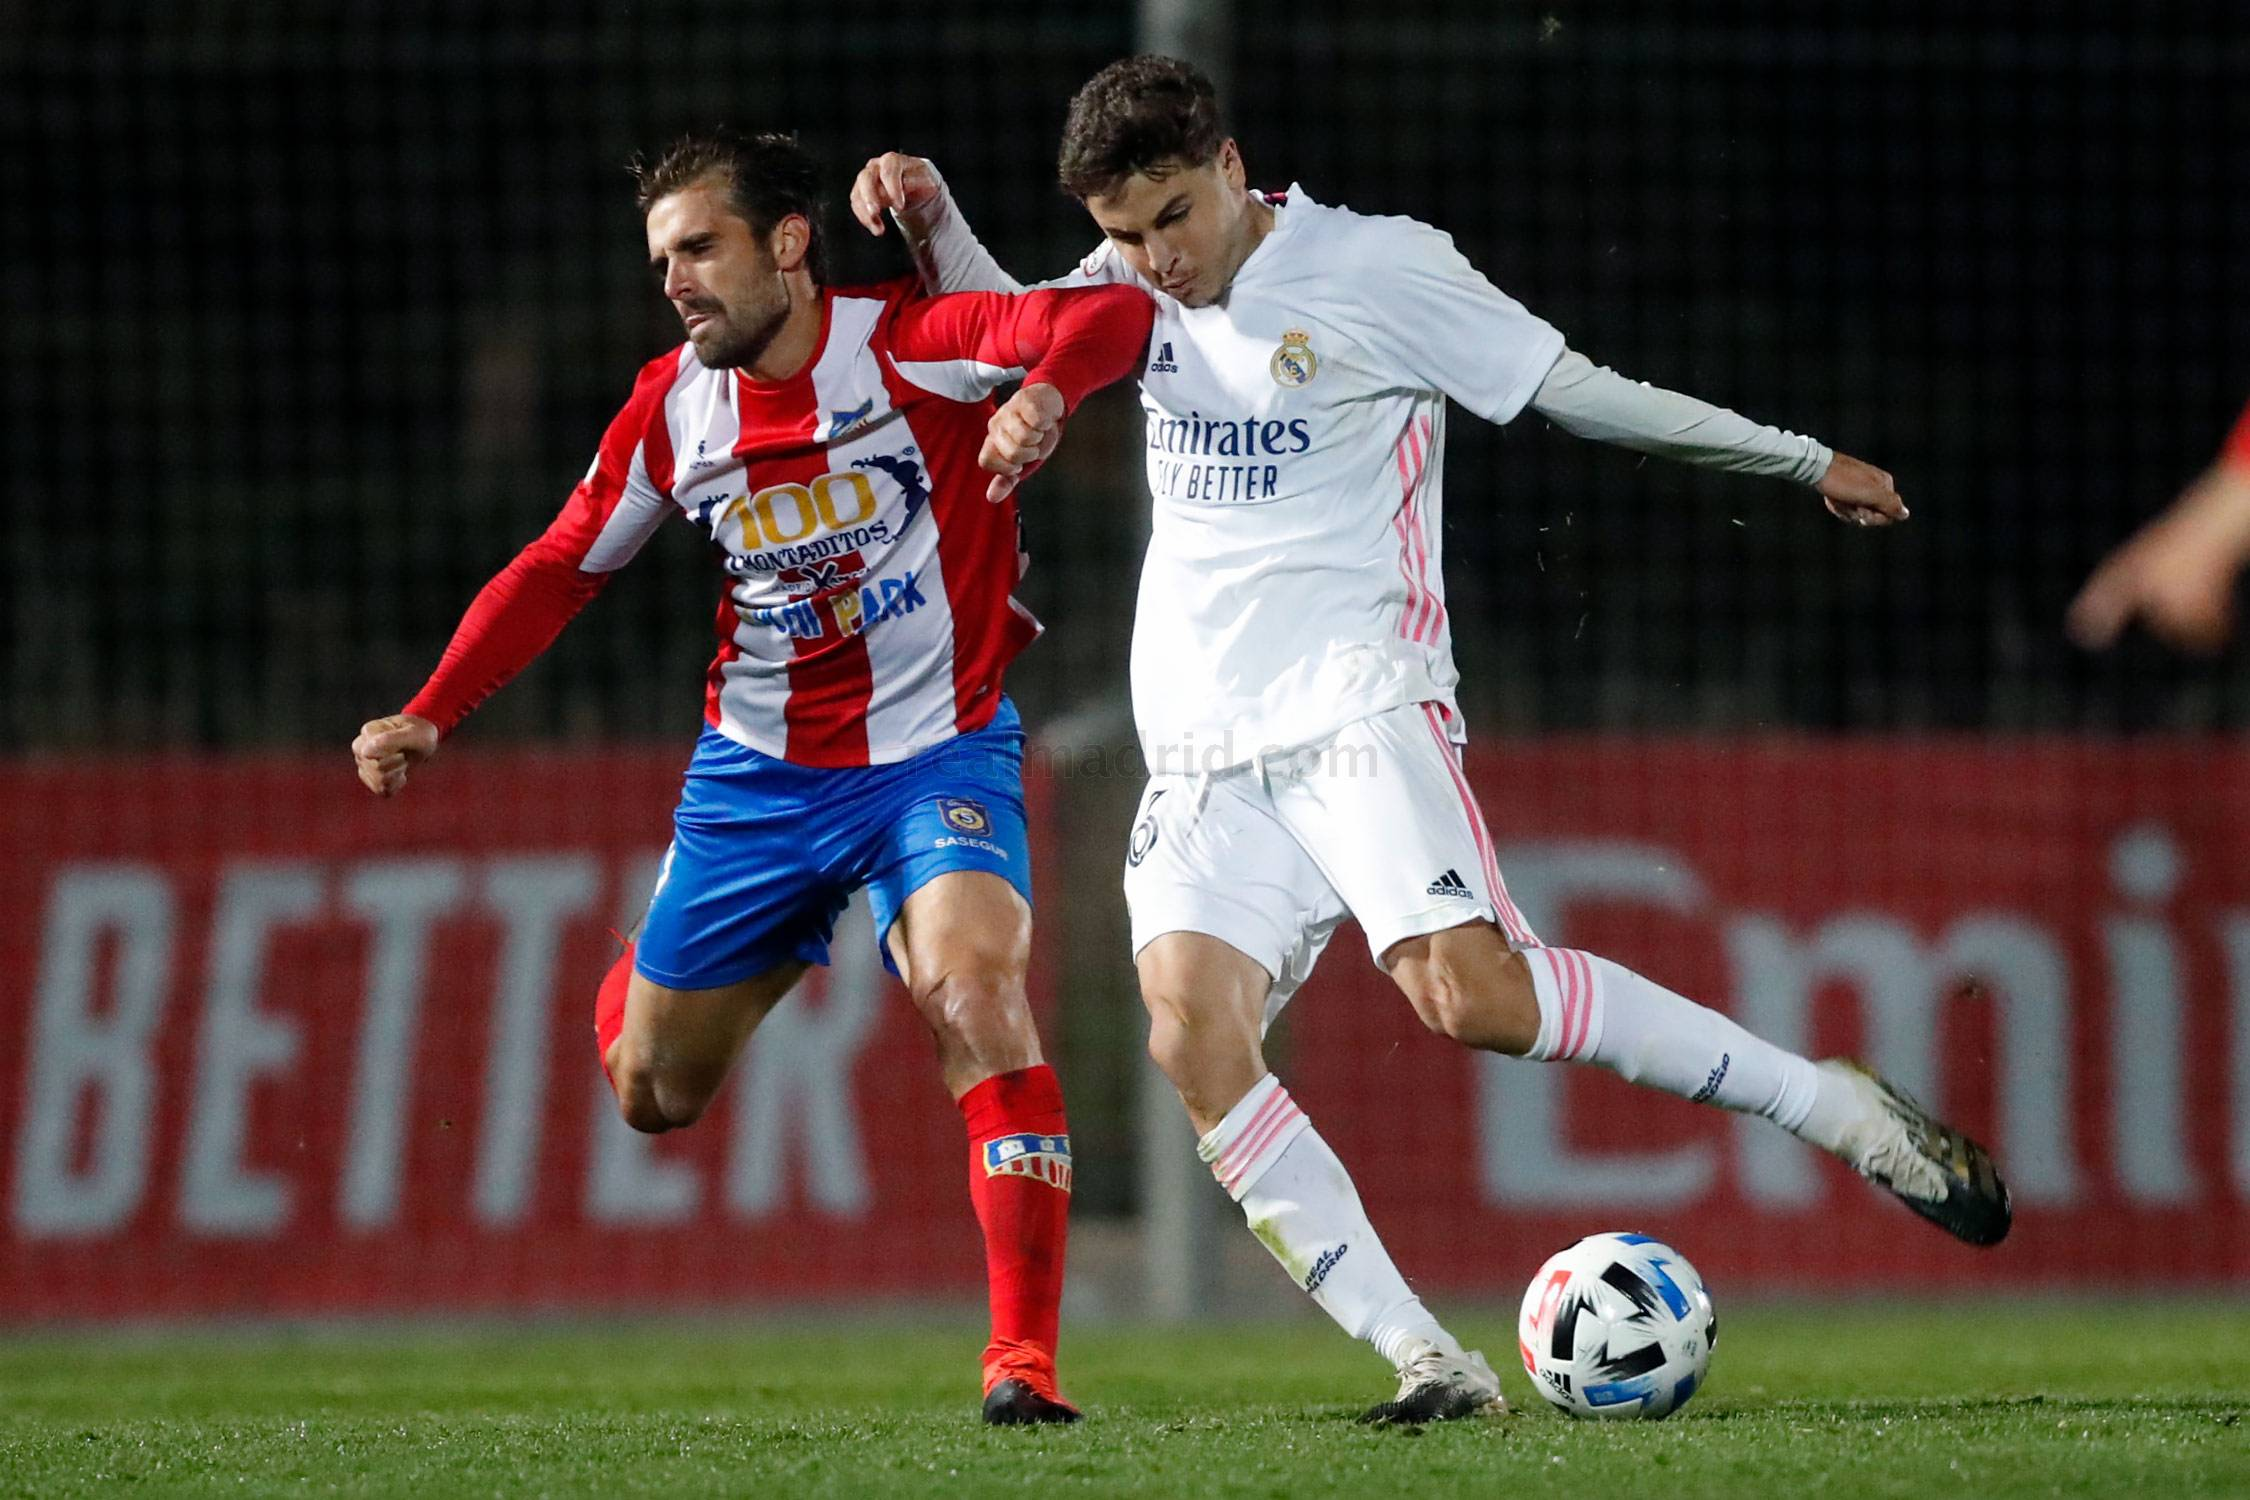 Real Madrid - Real Madrid Castilla - Navalcarnero - 21-11-2020